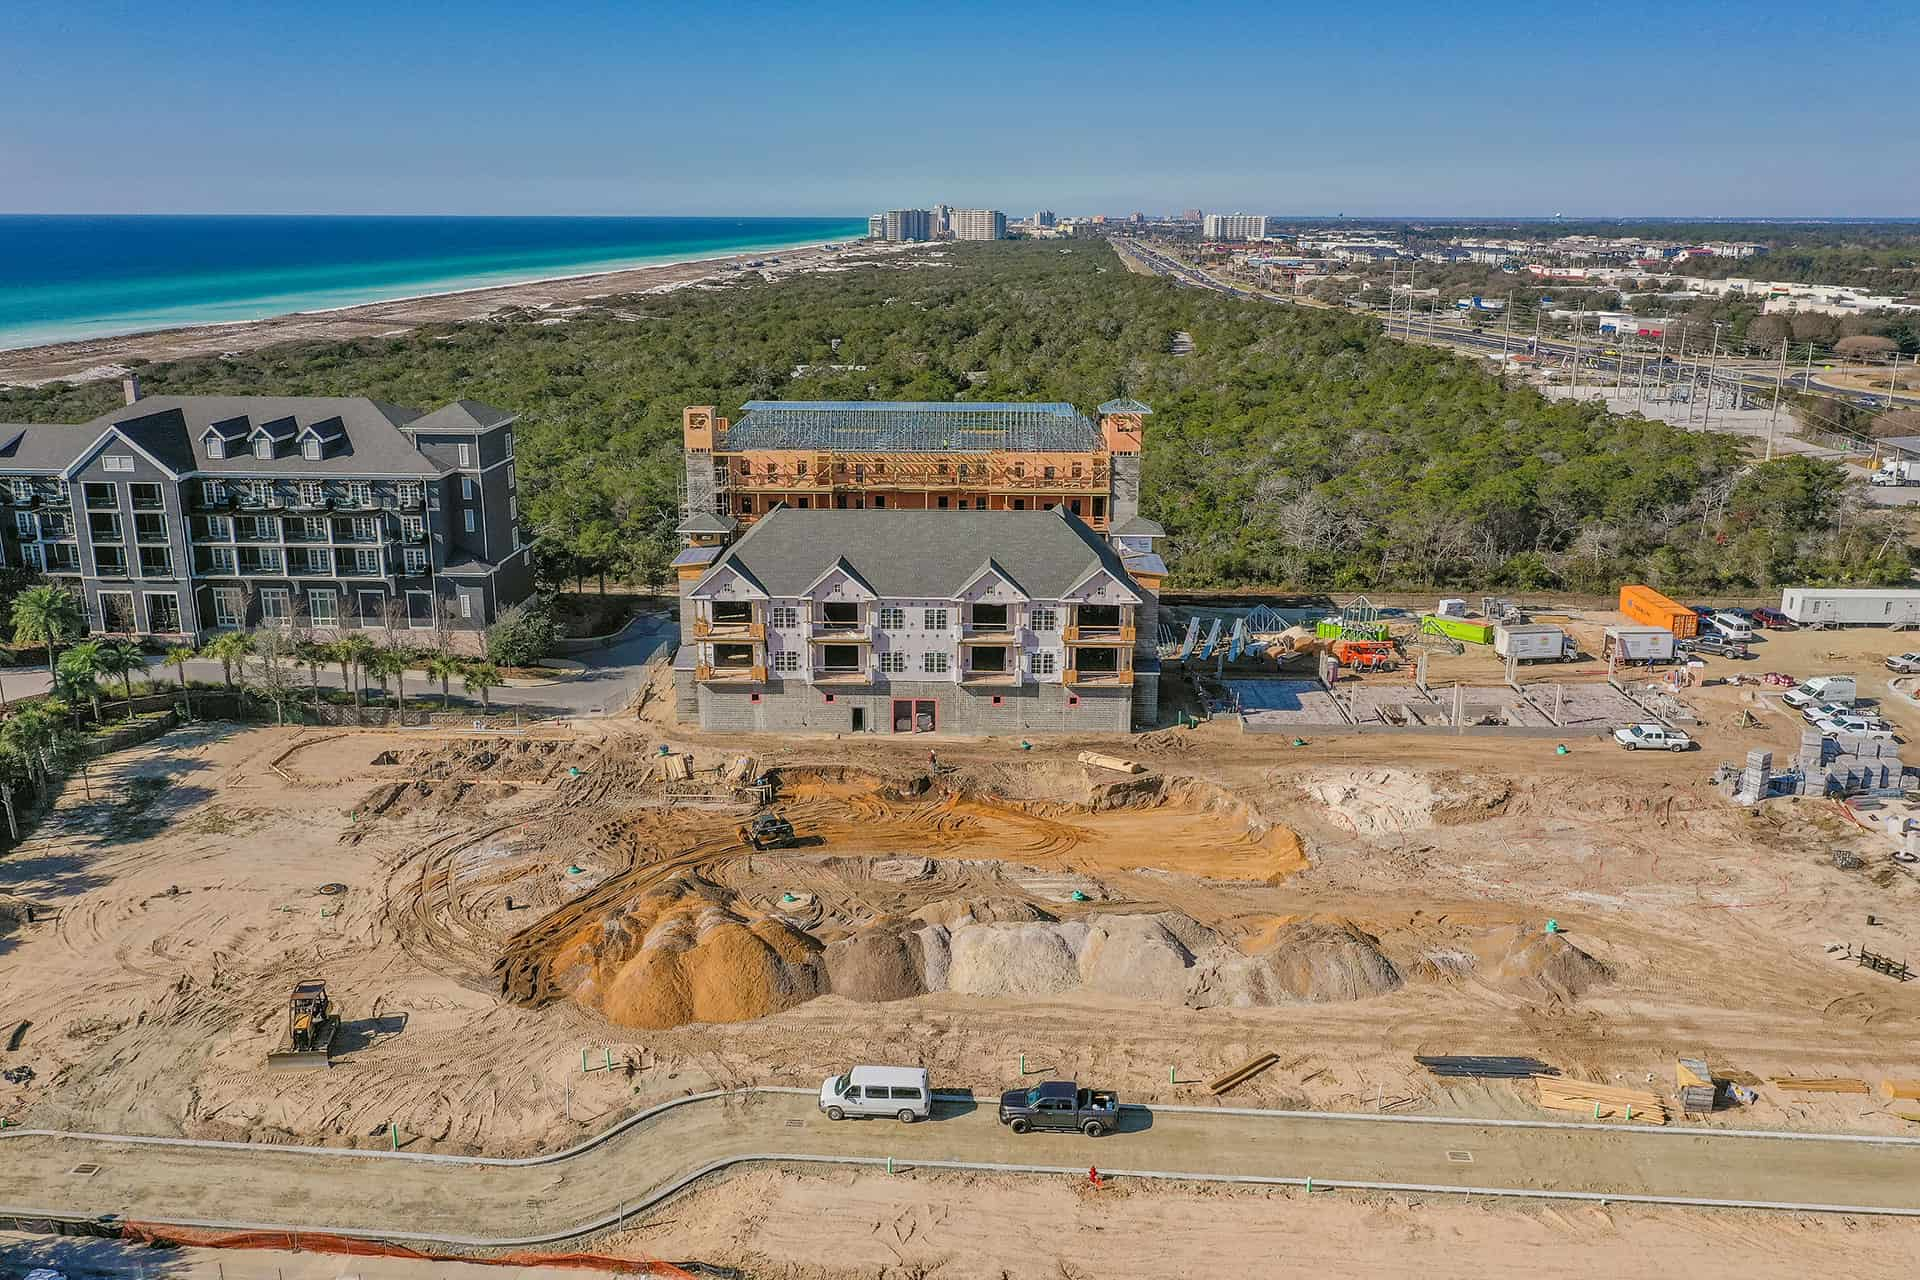 Parkside_at_Henderson_Beach_Resort_January_2021 drone photo looking west